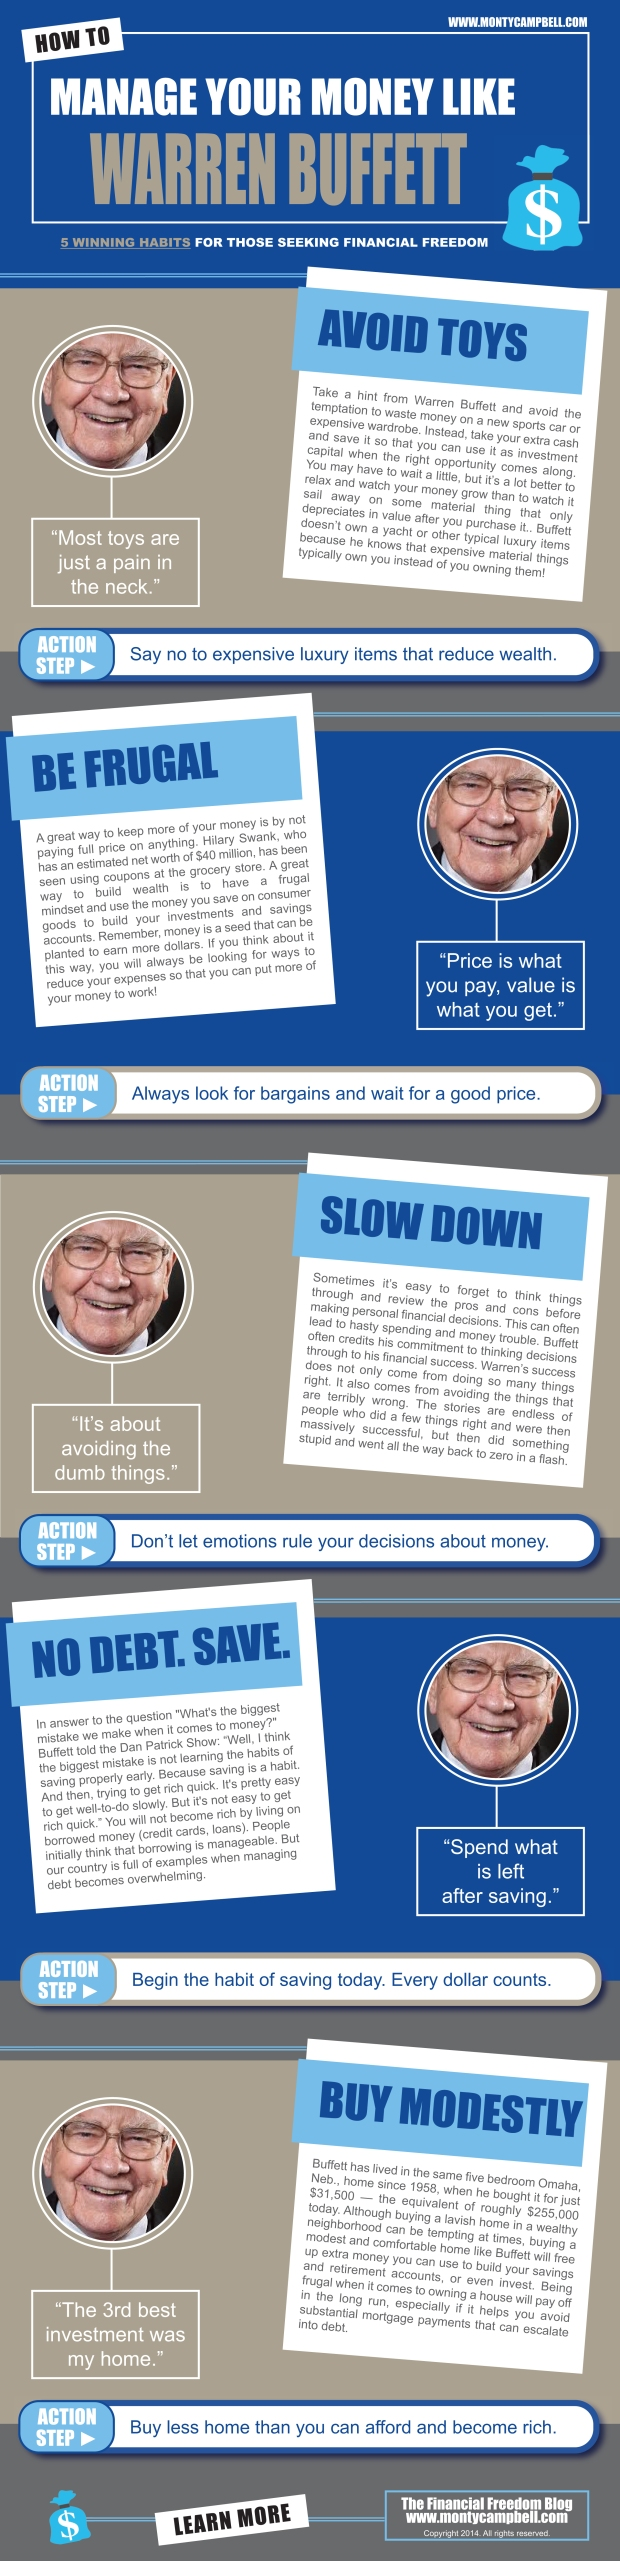 Infographic - Money Tips from Warren Buffett